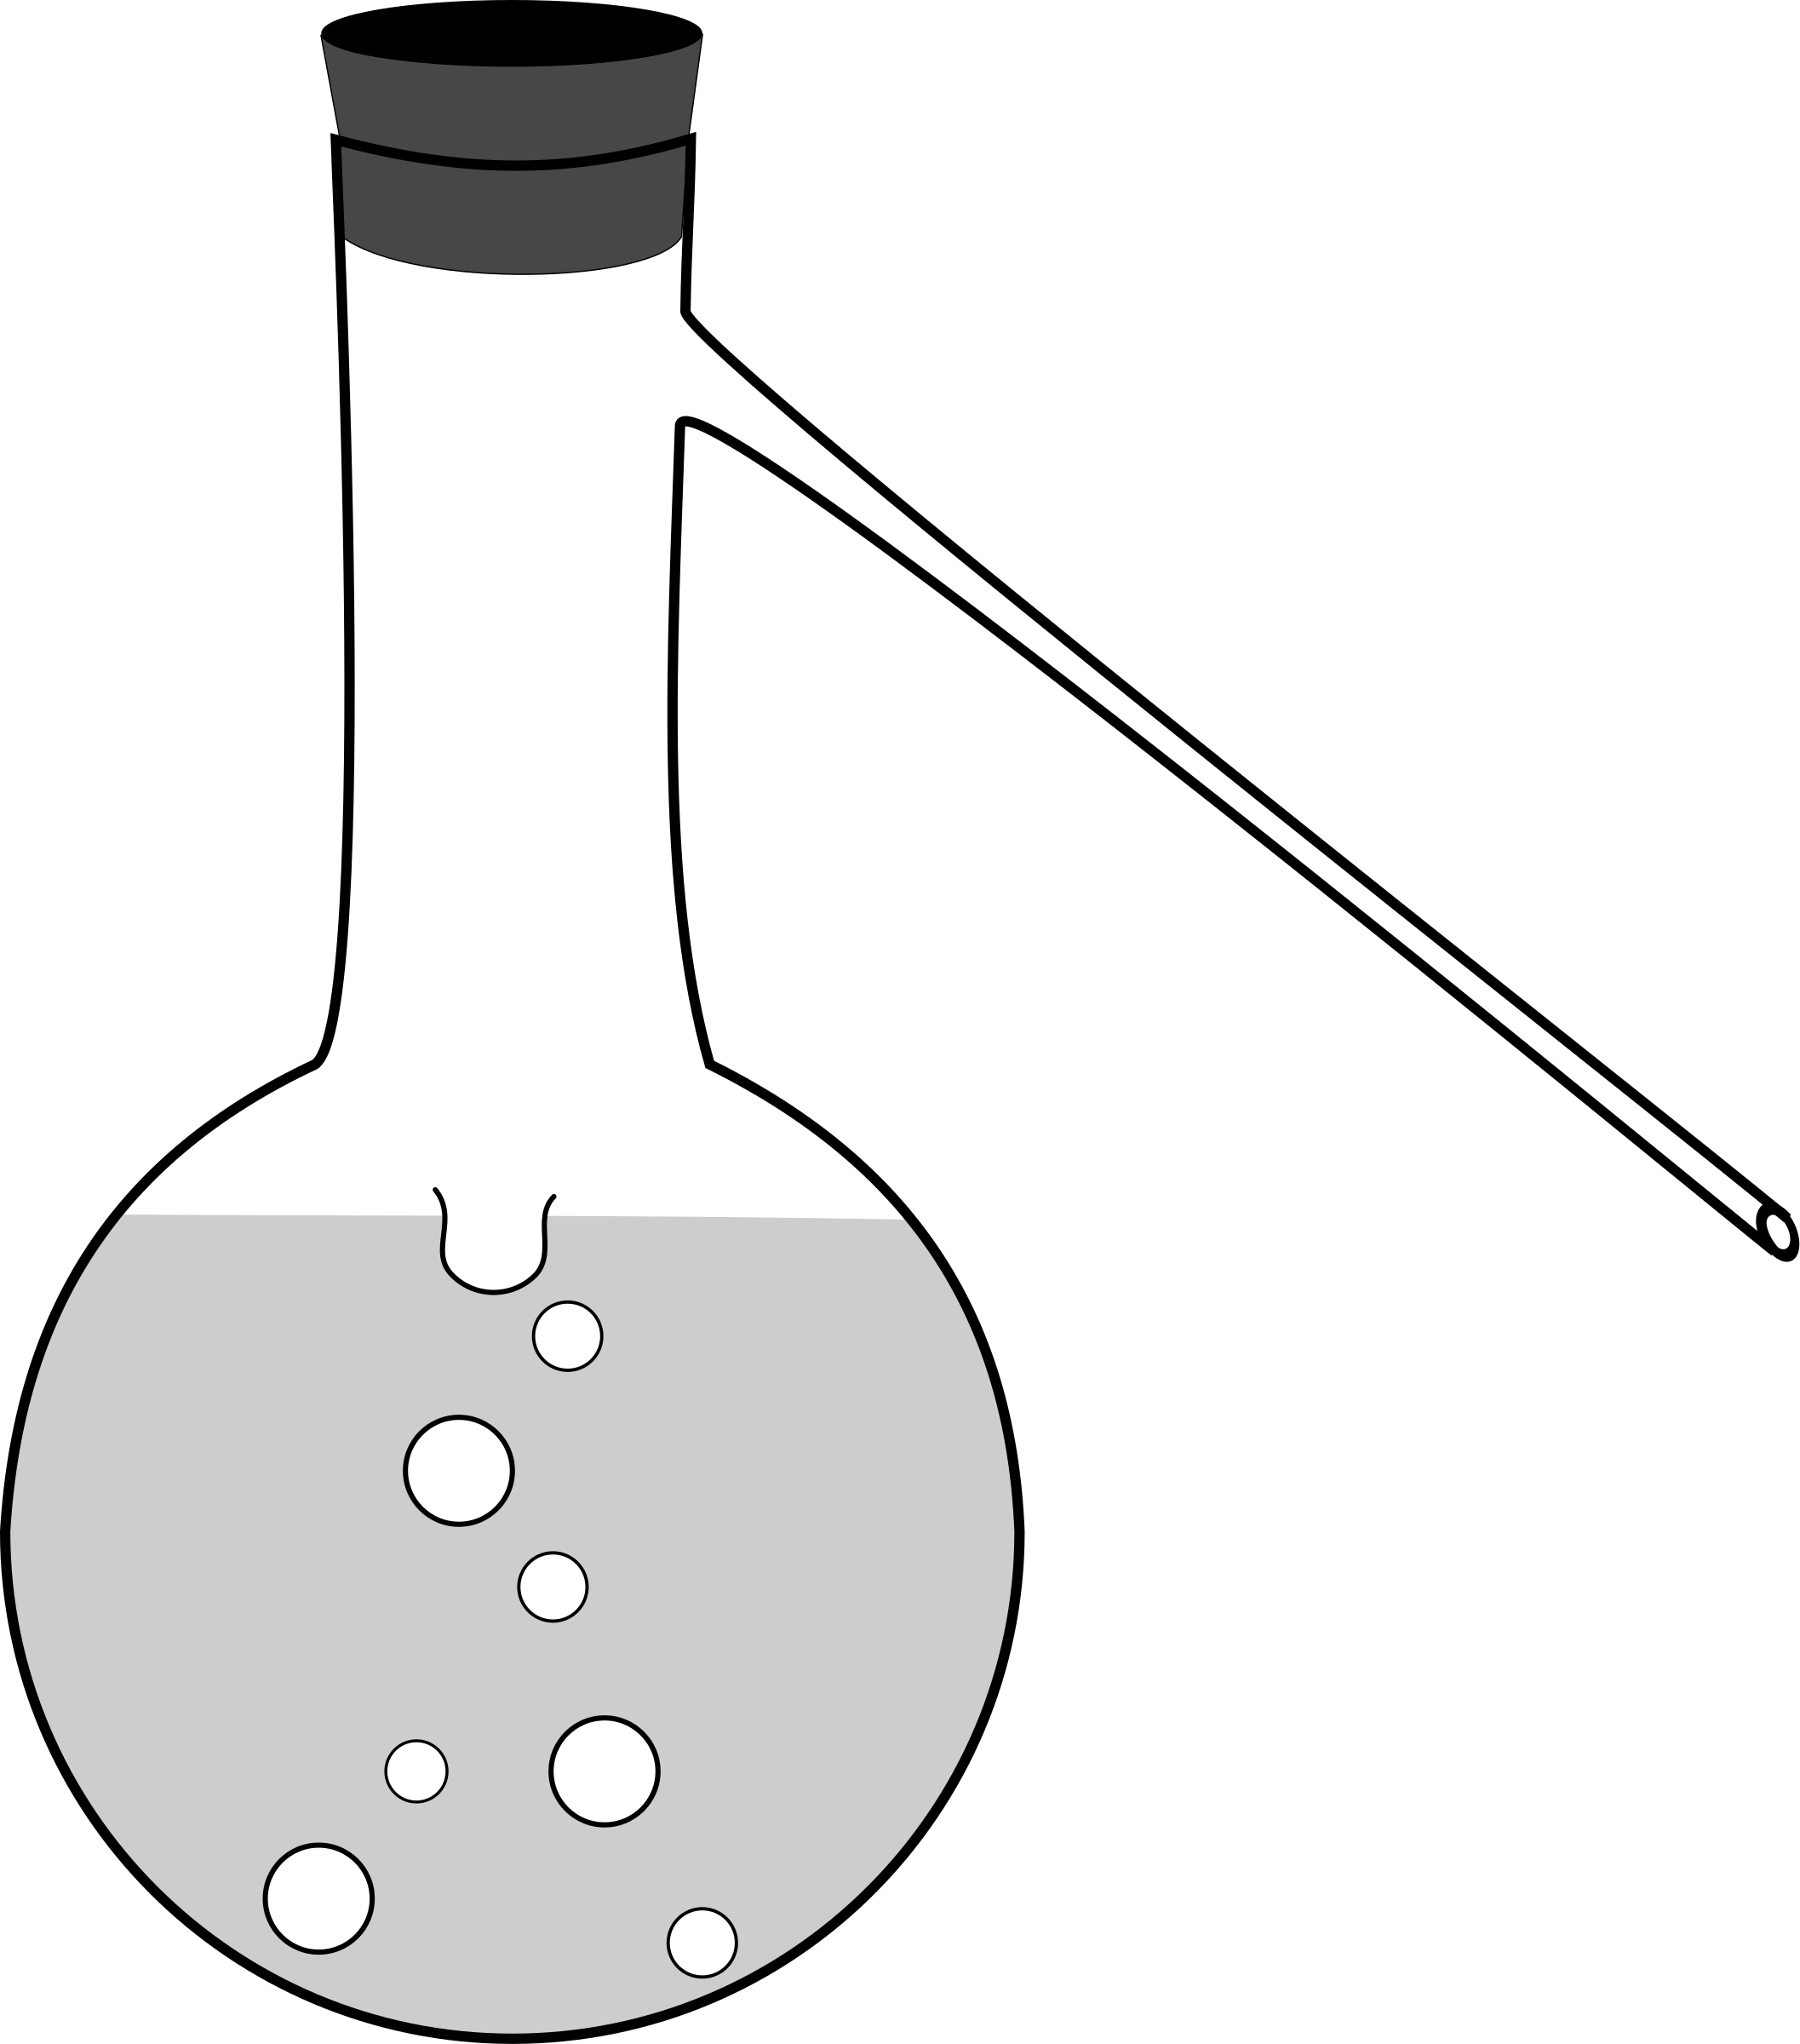 Flask drawing line. Clipart distilling with sidearm